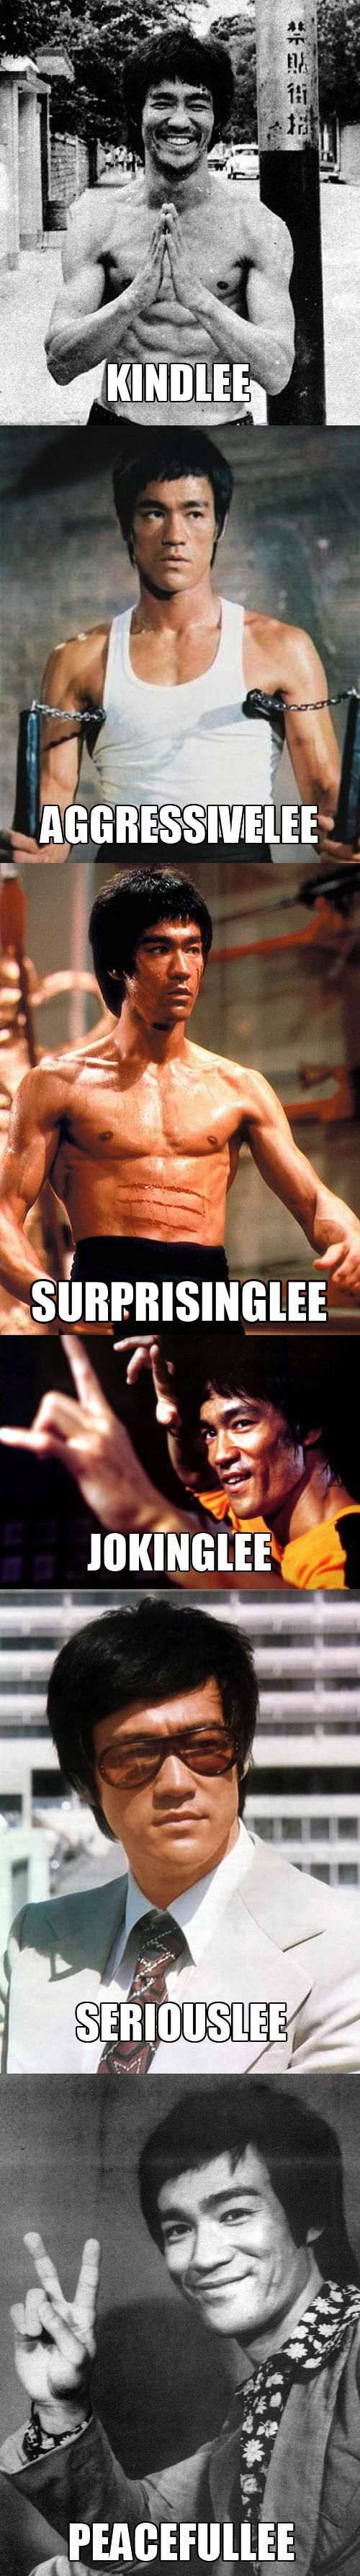 The many sides of Bruce Lee